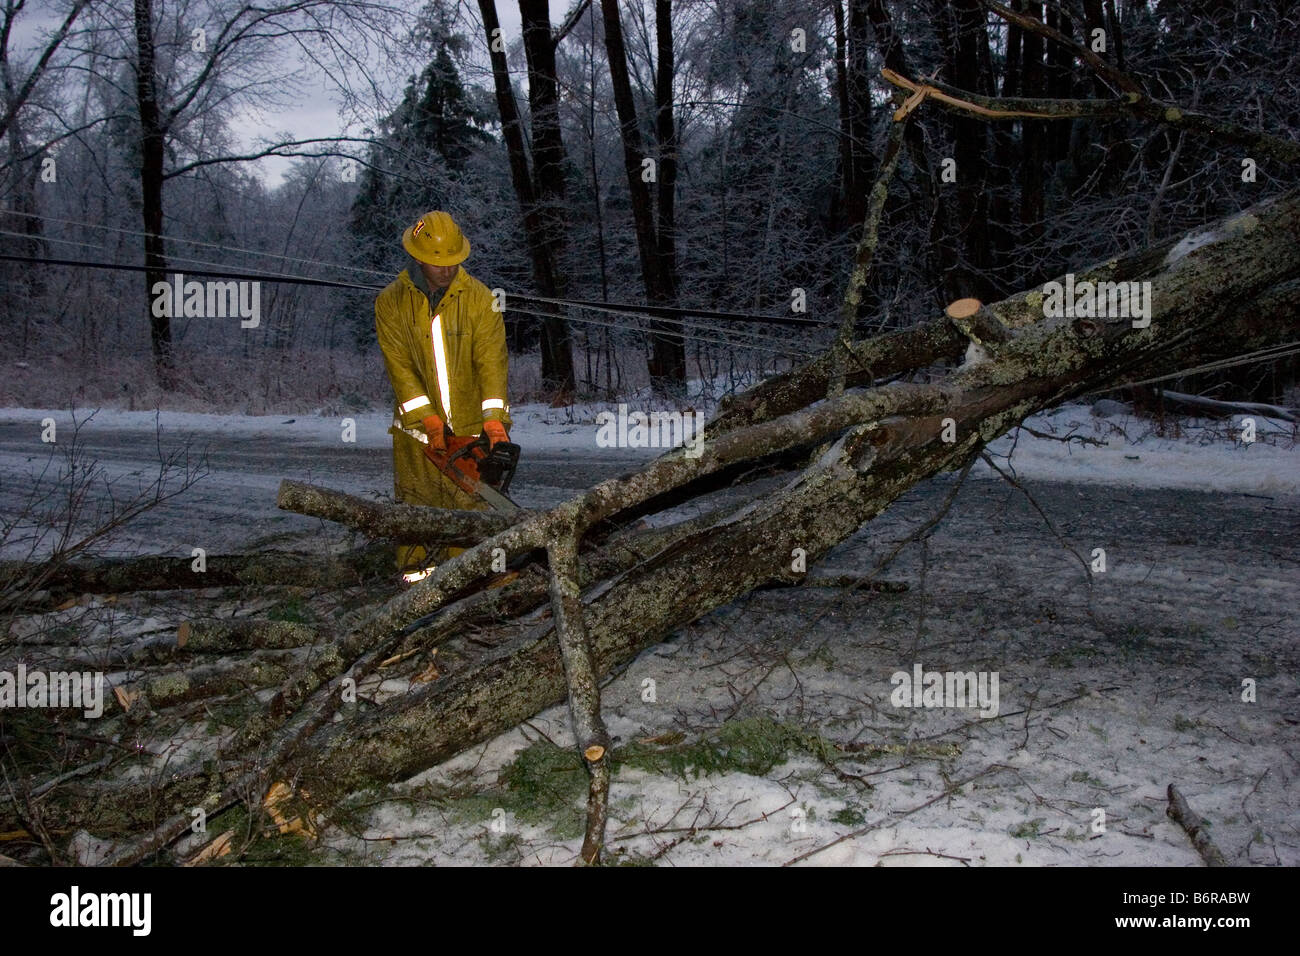 Utility worker cuts through a fallen tree on power line across road - Stock Image